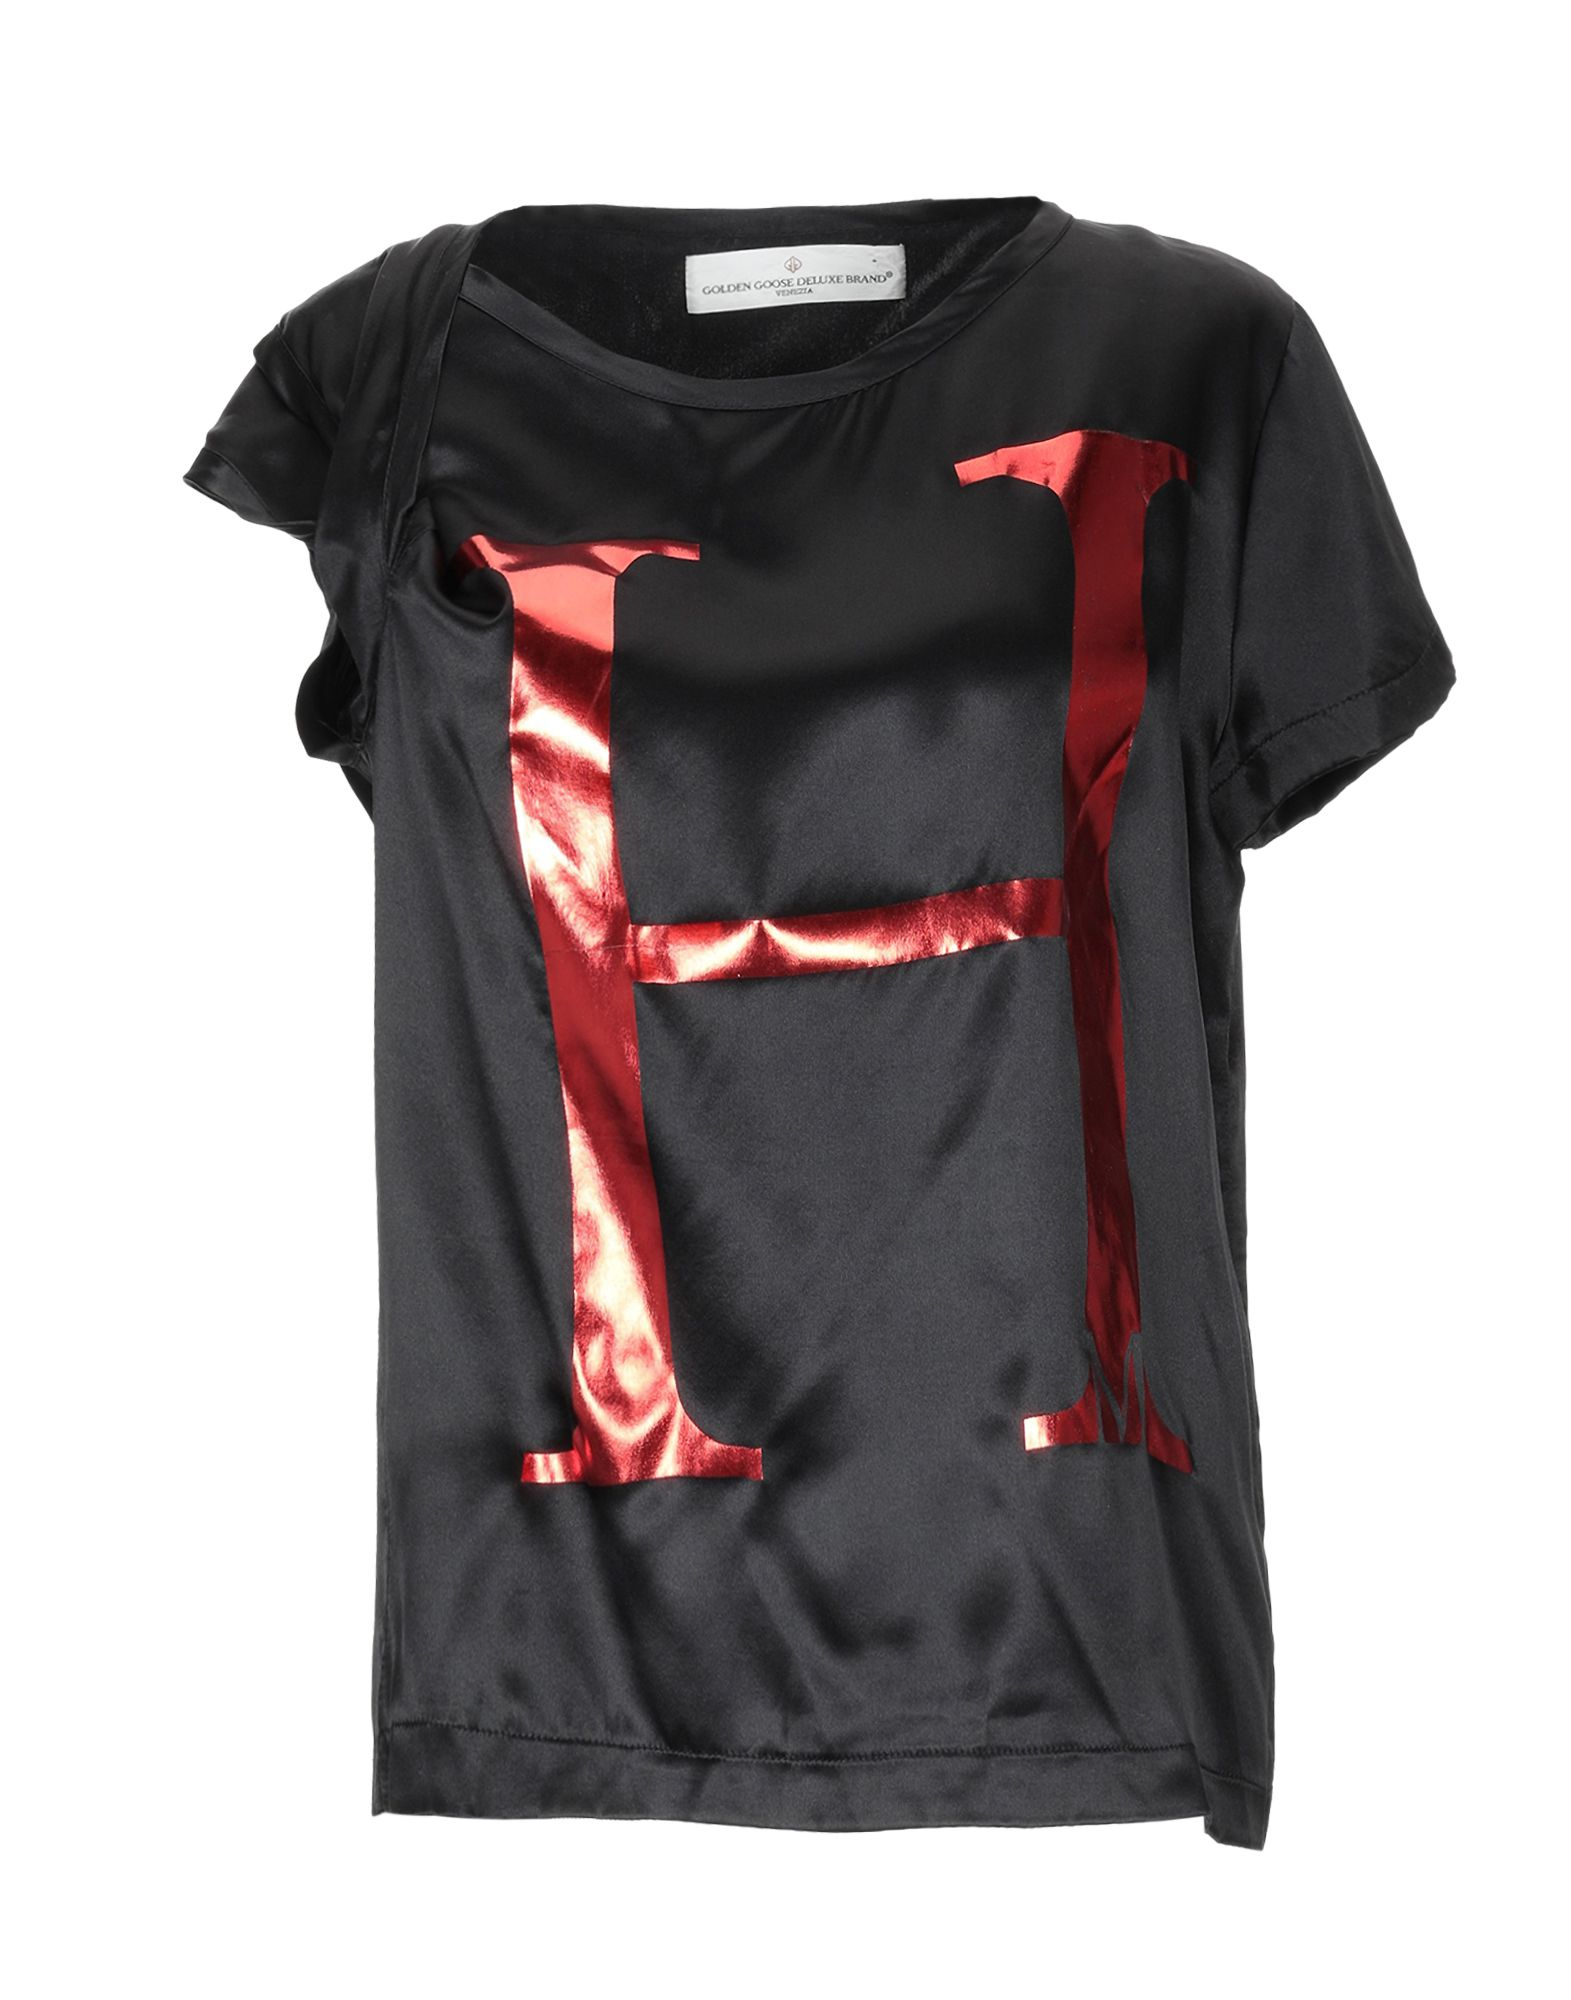 f04acd507dd3 Golden Goose Deluxe Brand Women's T-Shirts - Spring-Summer and Fall-Winter  Collections | YOOX